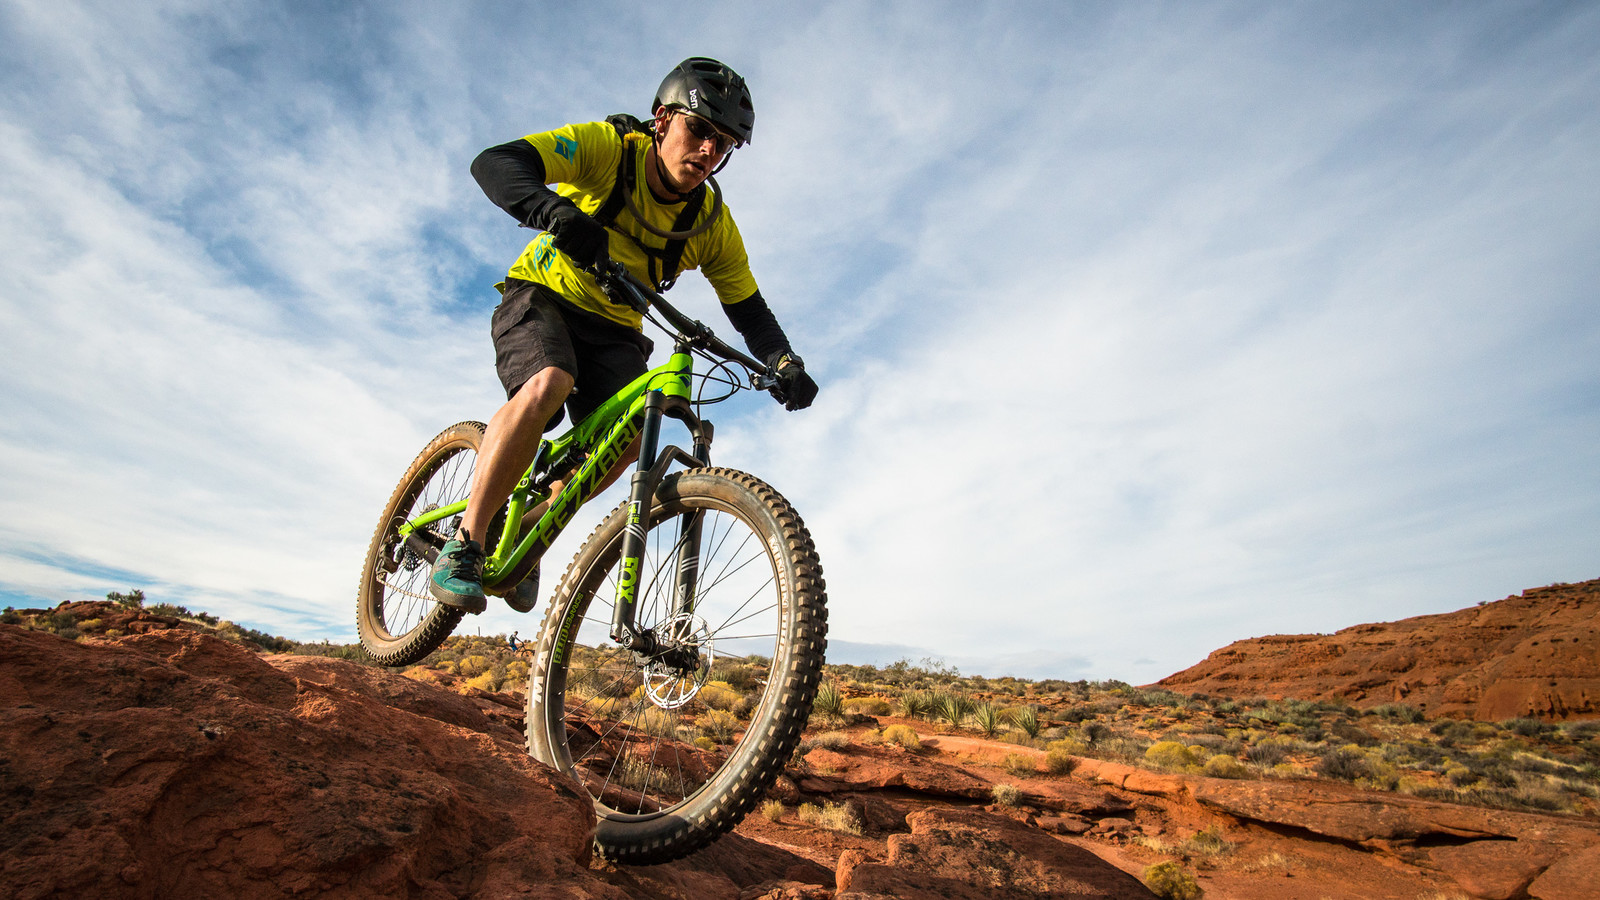 Behind the Bikes: Fezzari's New Alloy Full Suspension Line from Concept to Trail